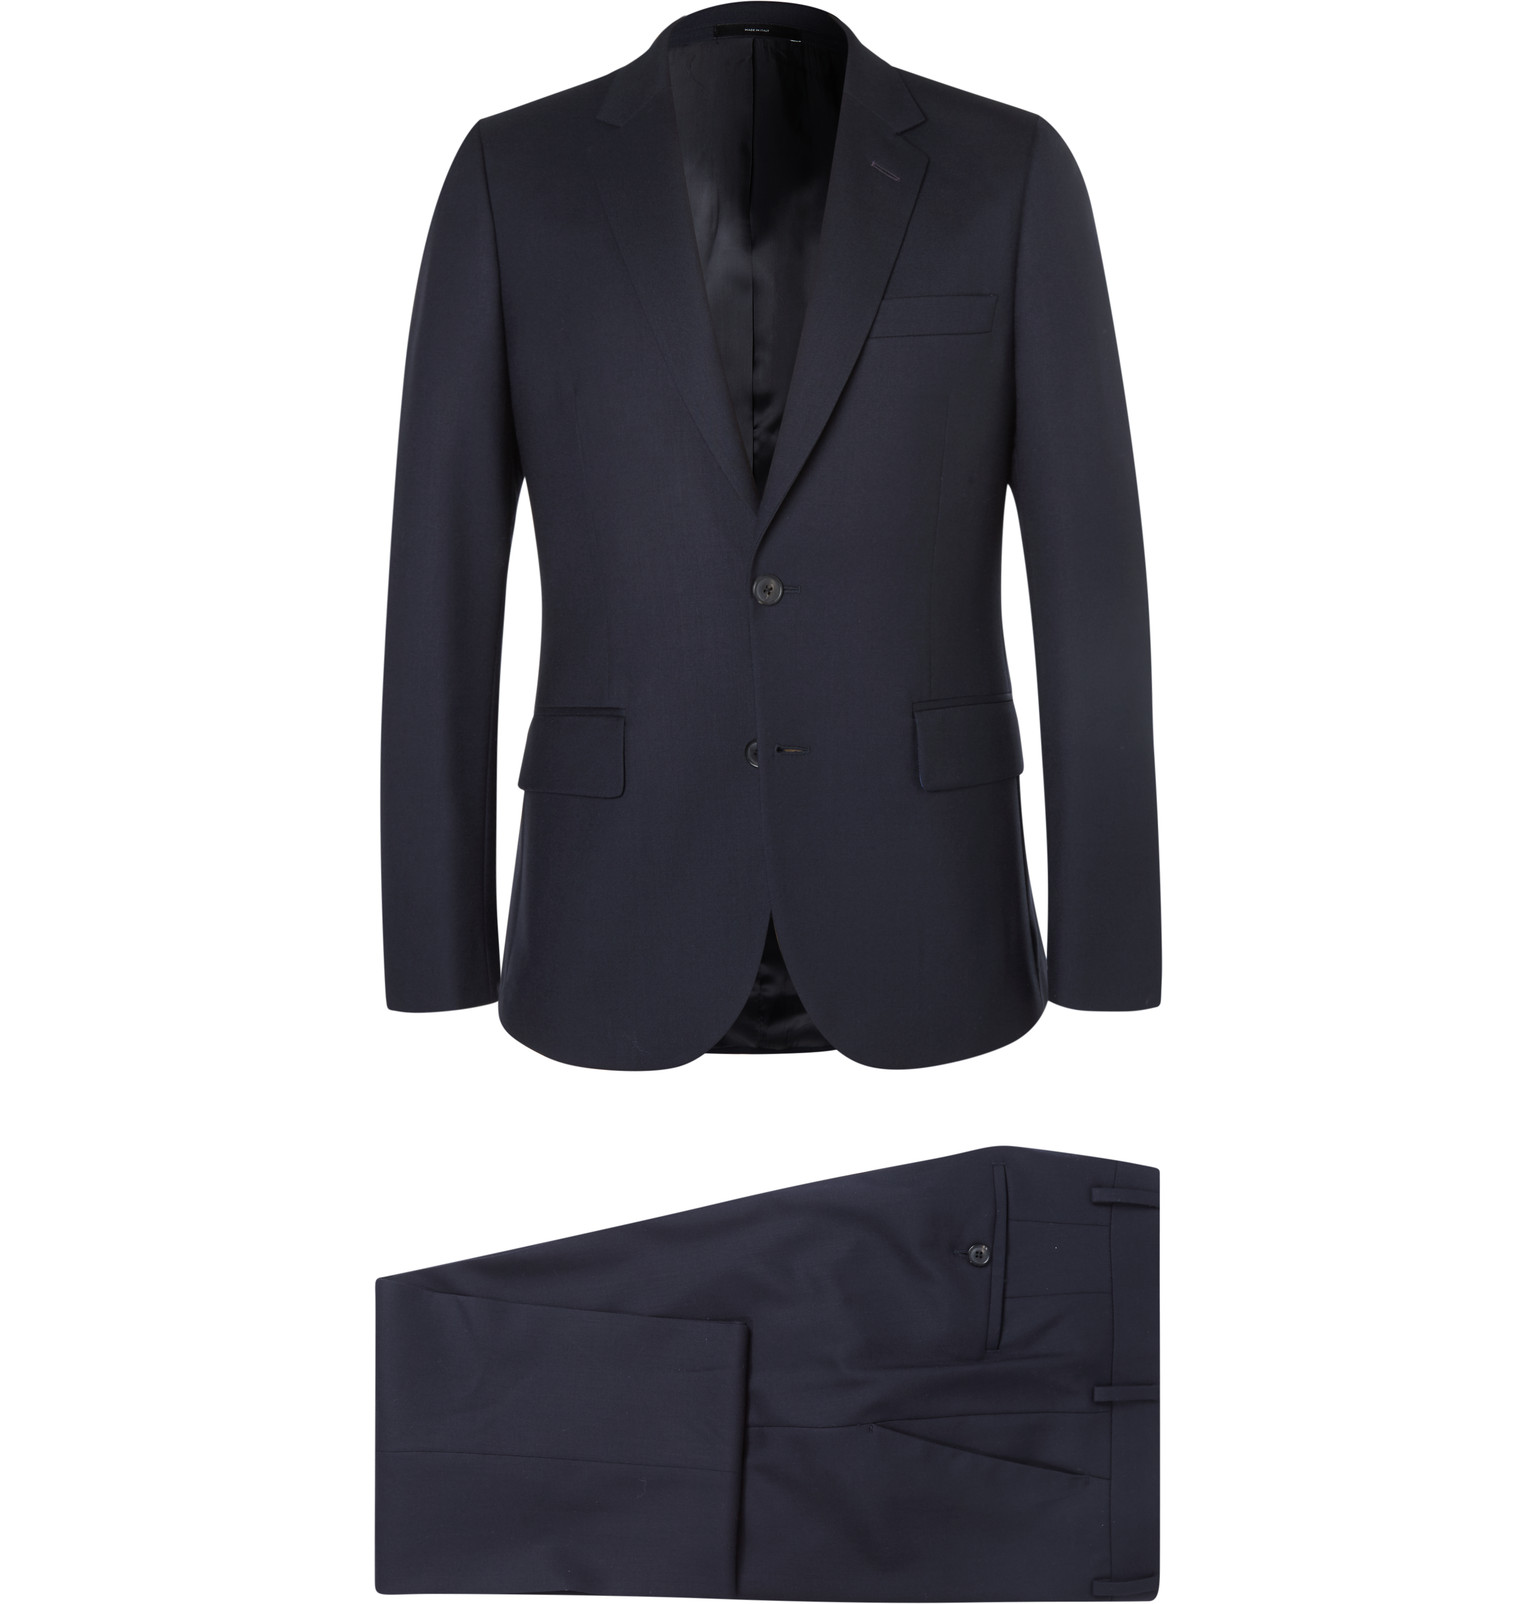 2a5d38a2 Paul Smith - Navy A Suit To Travel In Soho Slim-Fit Wool Suit